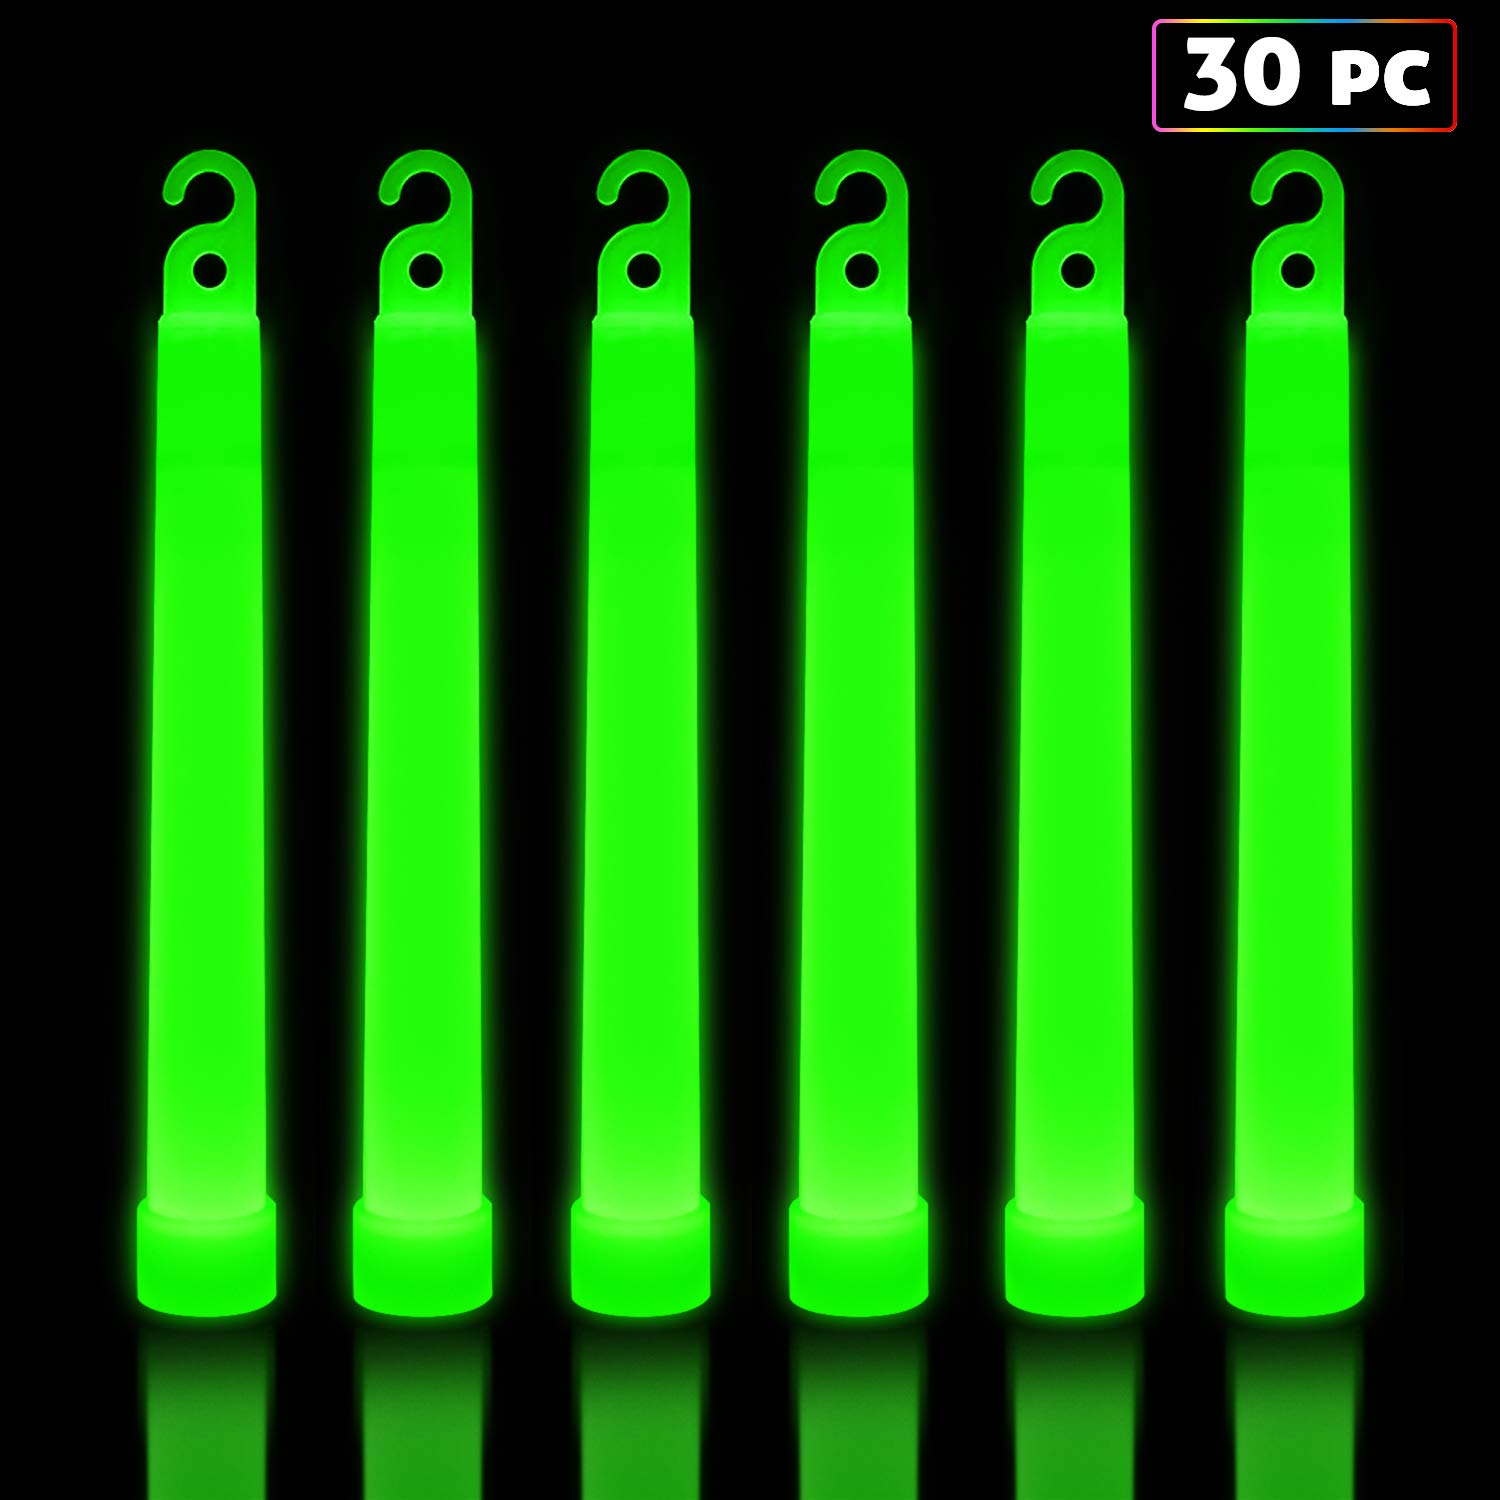 30 Pack Glow Sticks Bulk - Glow in The Dark Party Supplies - Waterproof and Non Toxic Neon Party Light Sticks for Kids and Adults (Green, 30 Pack)